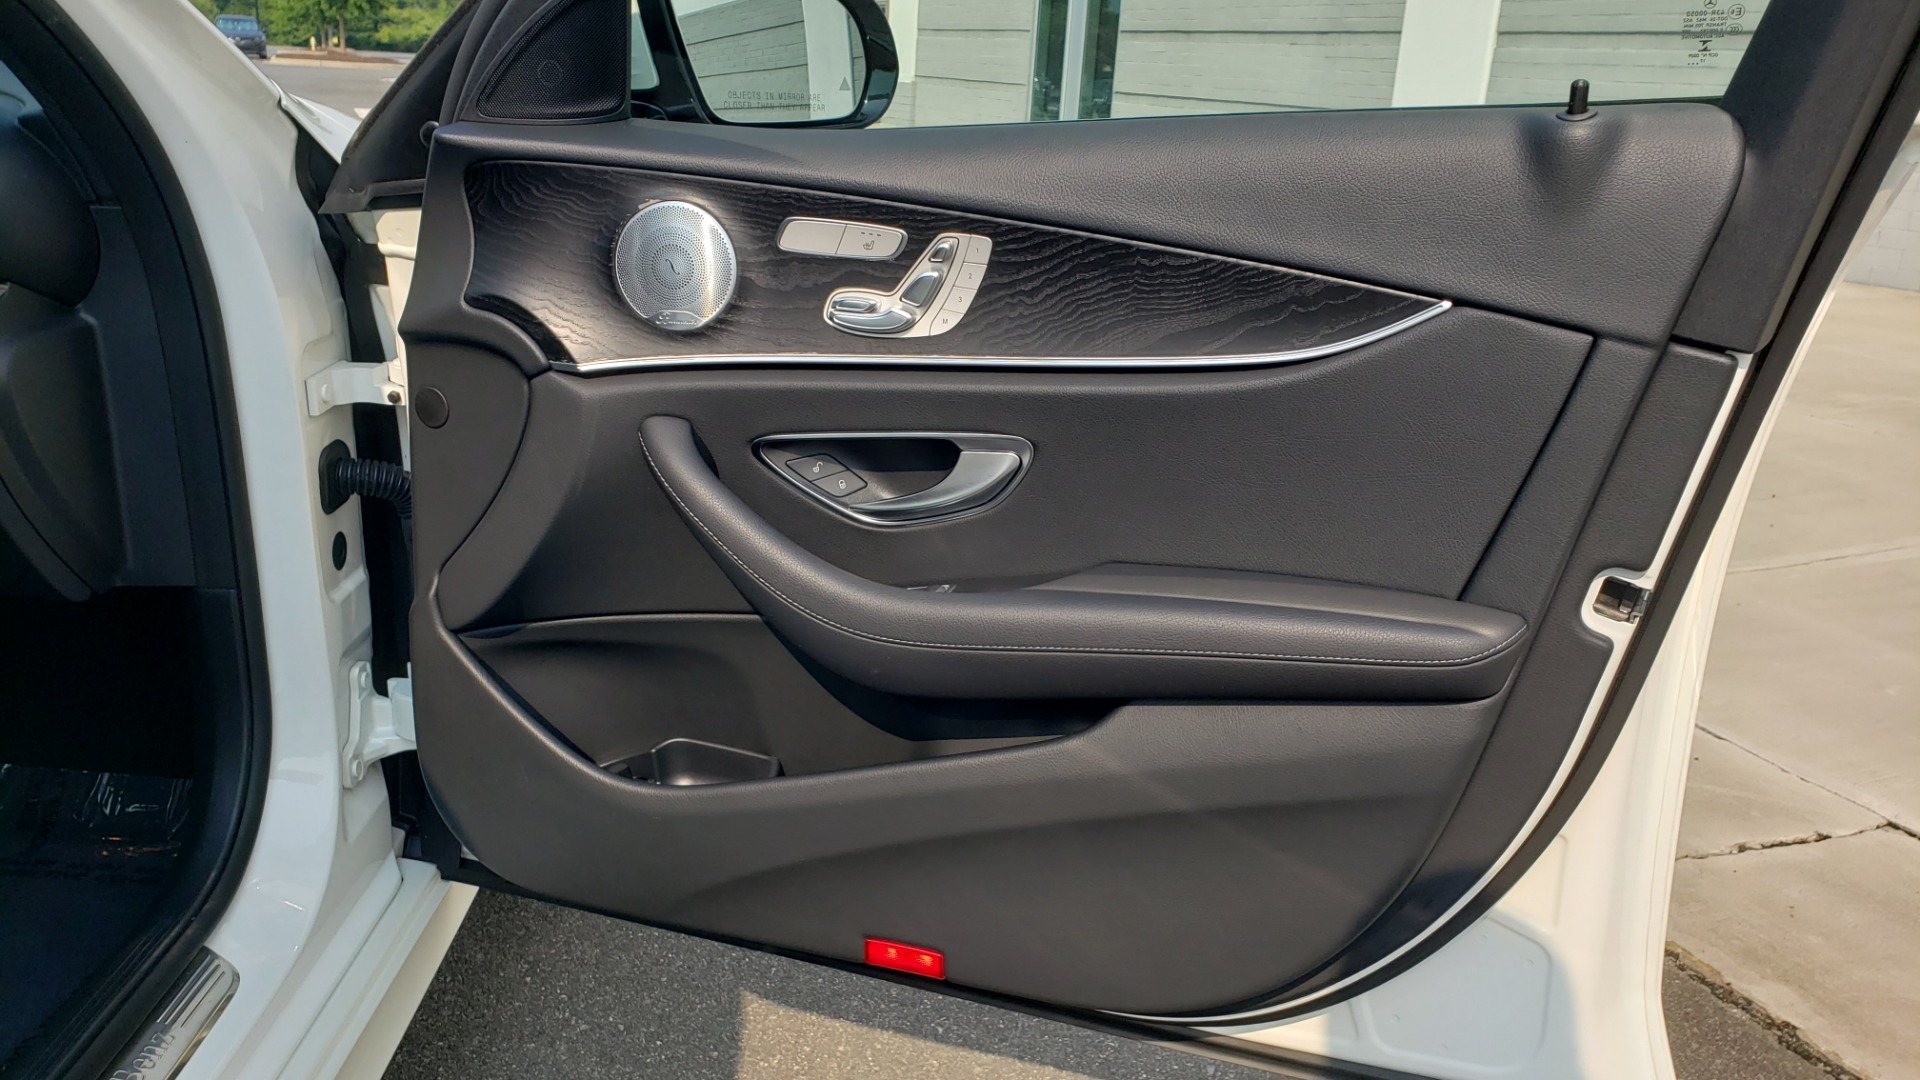 Used 2018 Mercedes-Benz E-CLASS E 300 4MATIC / PREMIUM / NAV / PANO-ROOF / BURMESTER / REARVIEW for sale $41,995 at Formula Imports in Charlotte NC 28227 58